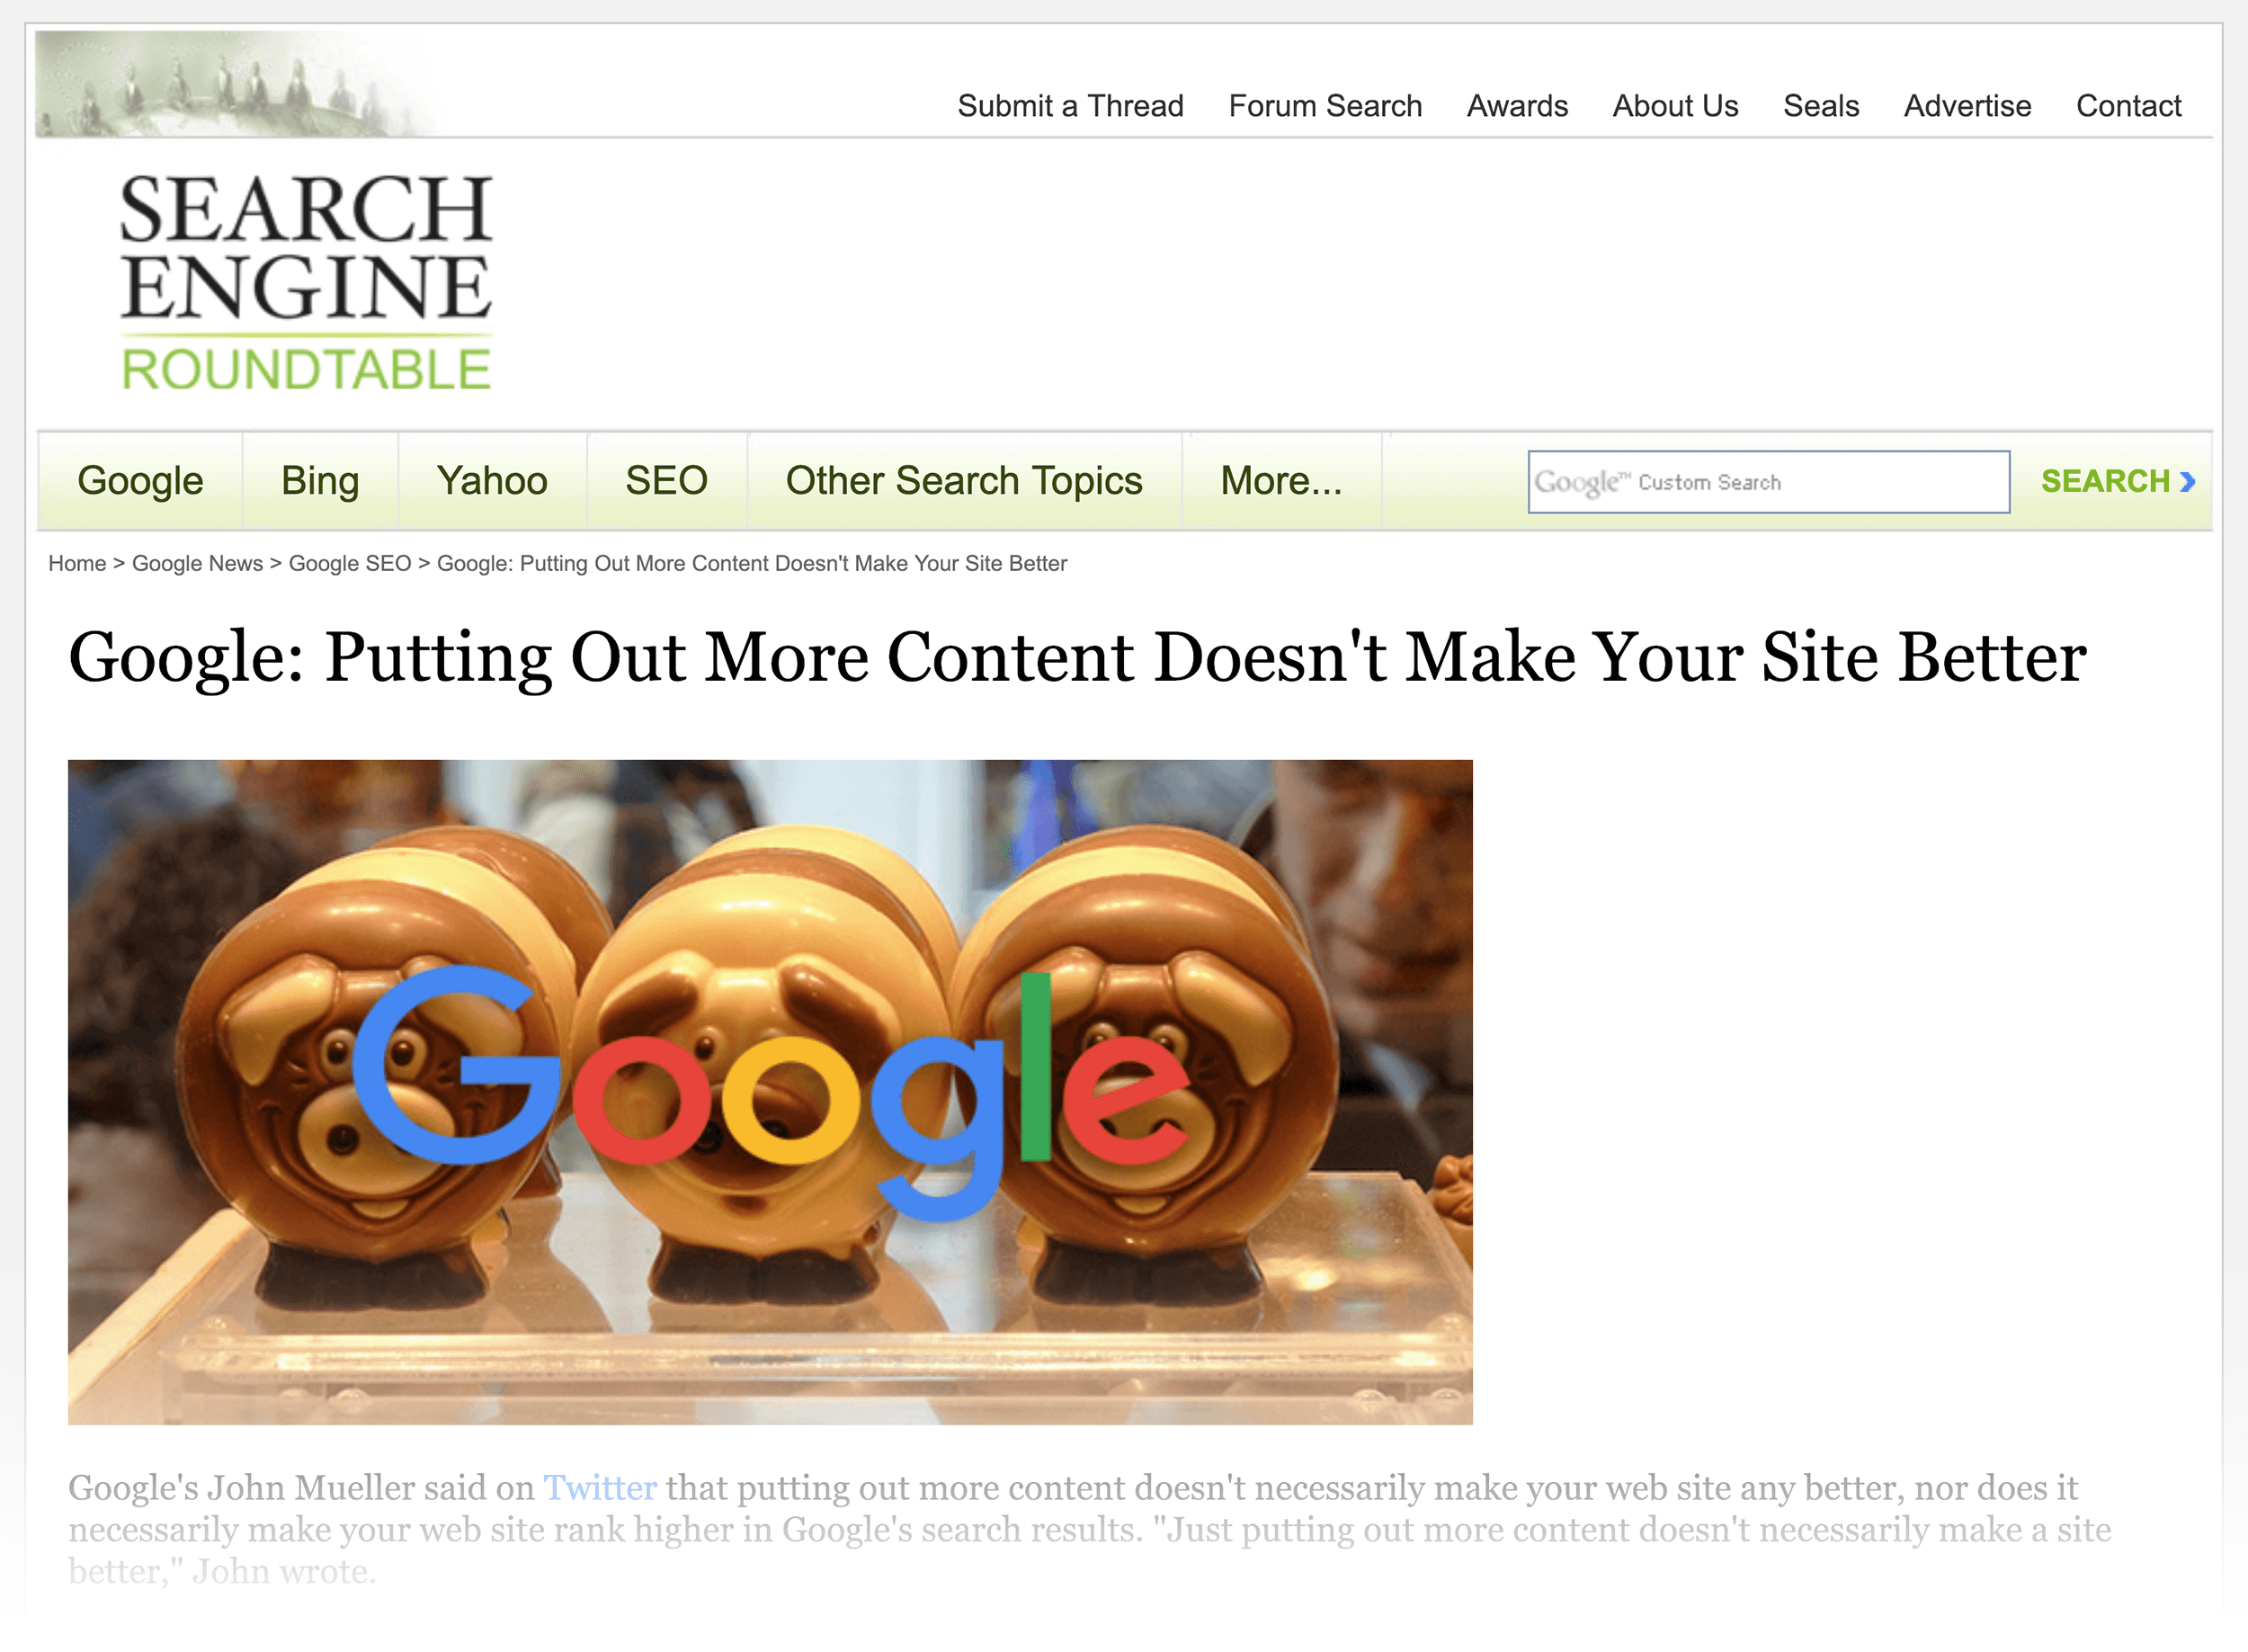 Google: Putting out more content doesn't make your site better